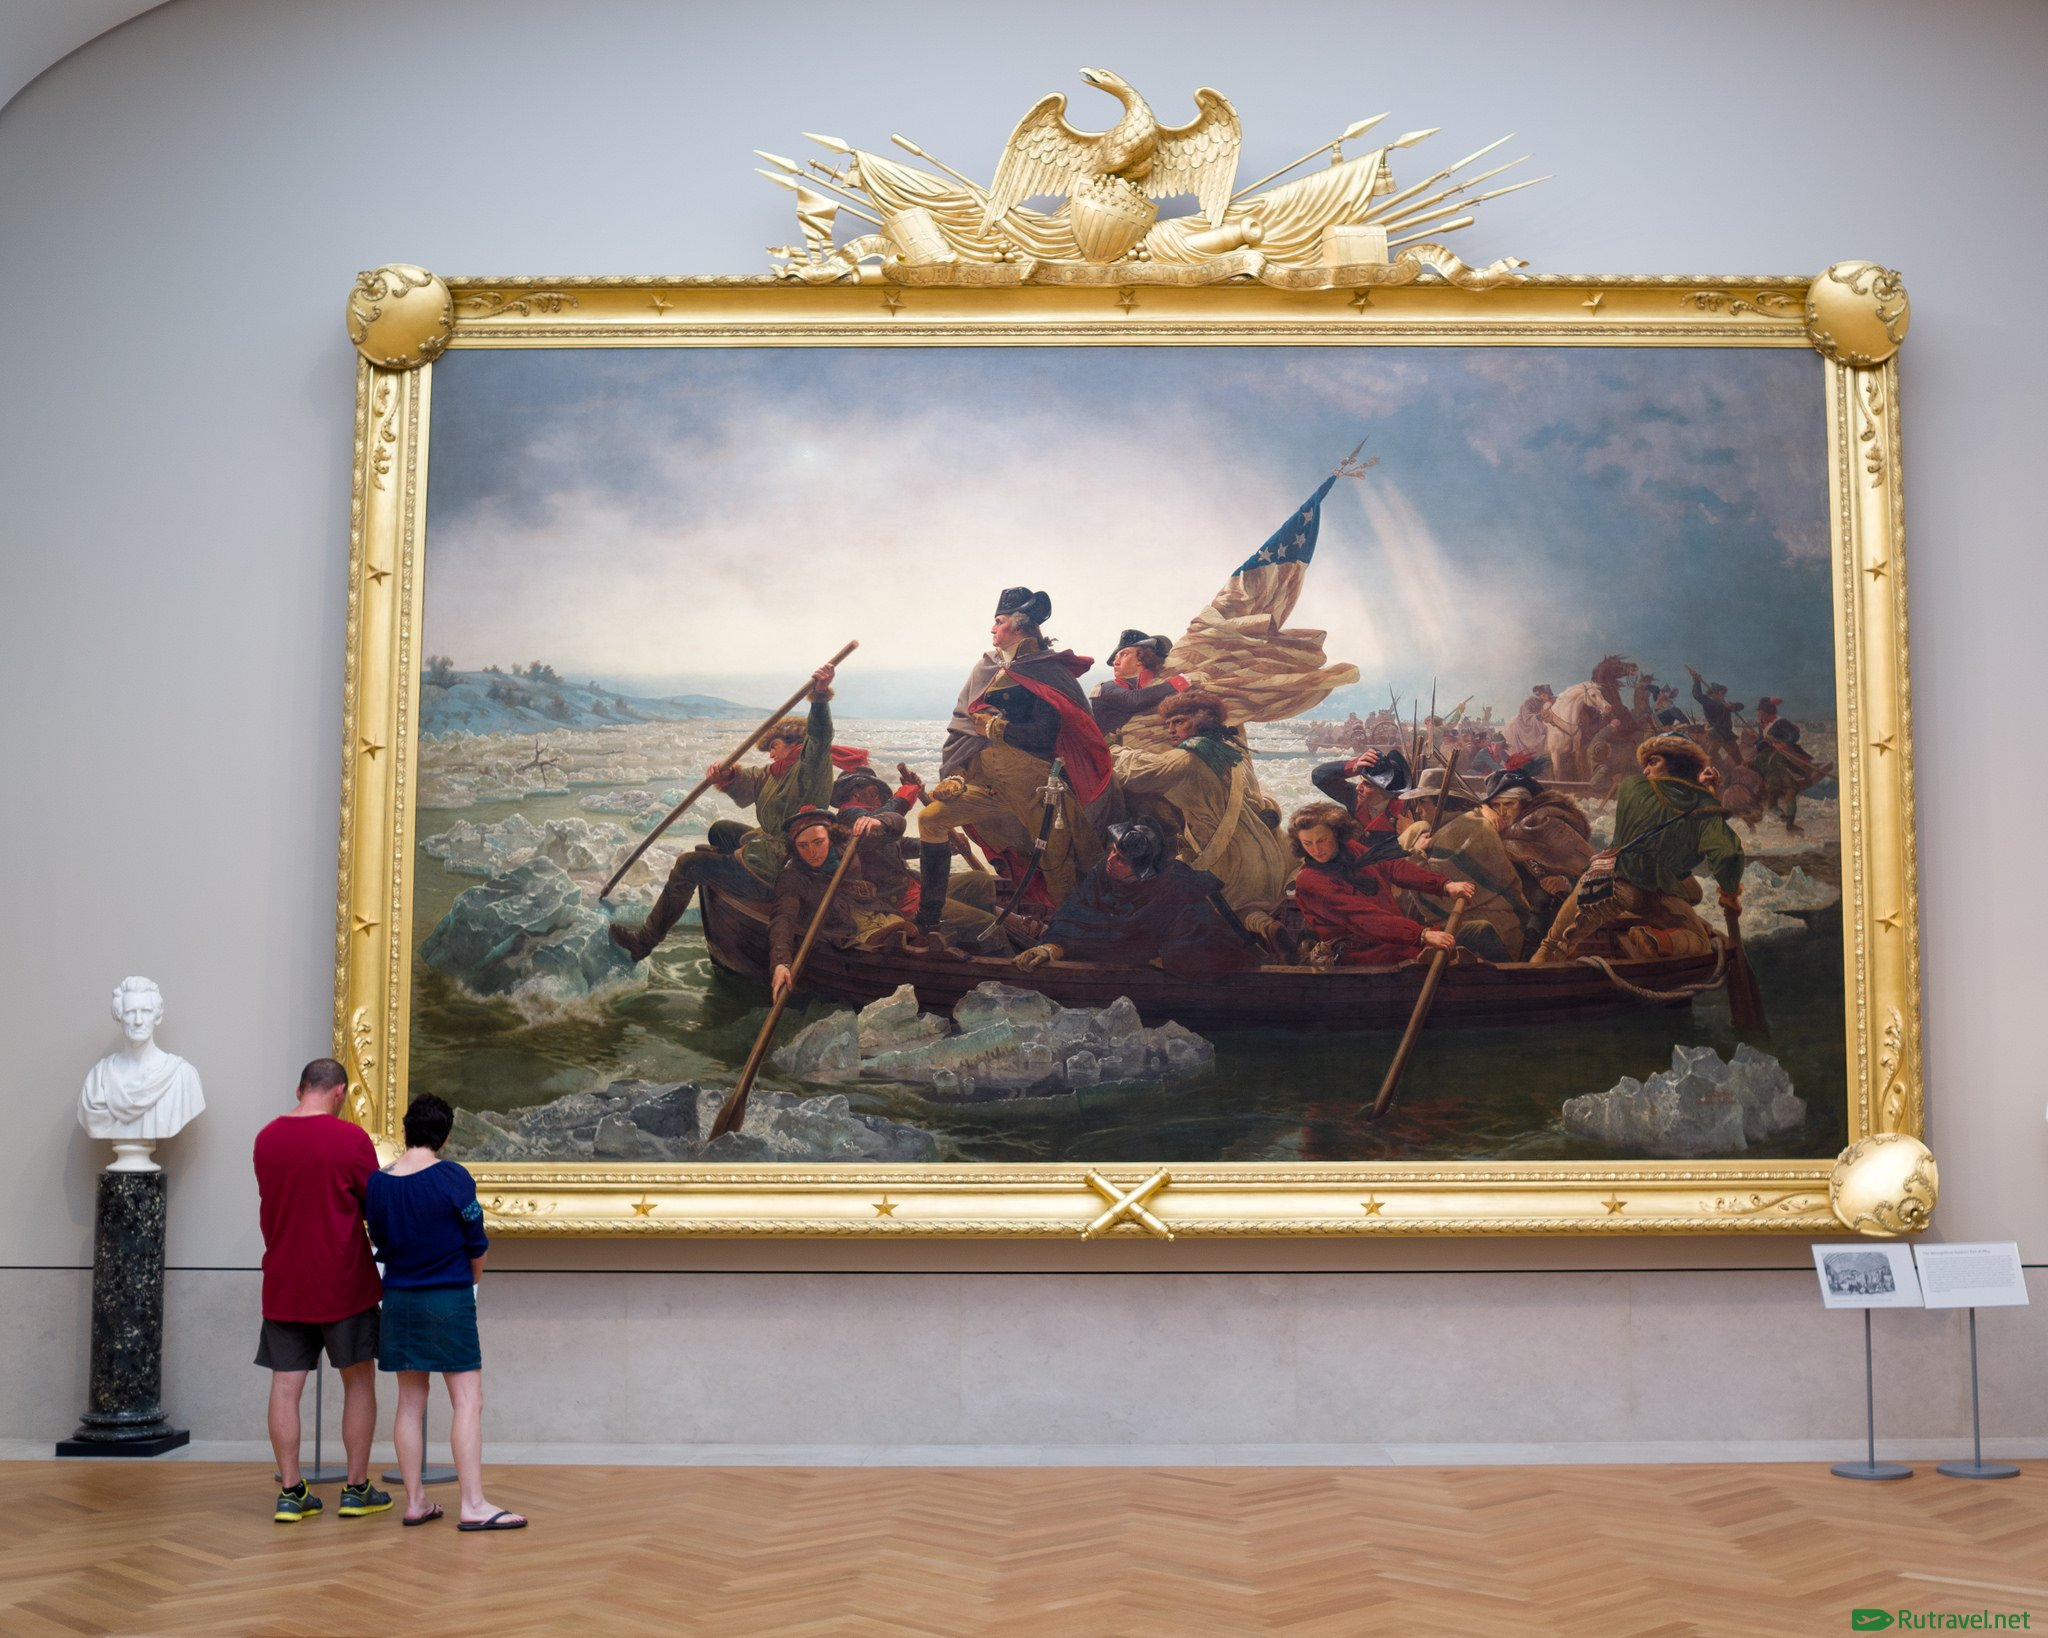 crossing essay Crossing and a report on the painting,  crossing the delaware,  including an especially insightful essay by historian benjamin newcomb on the decision to.